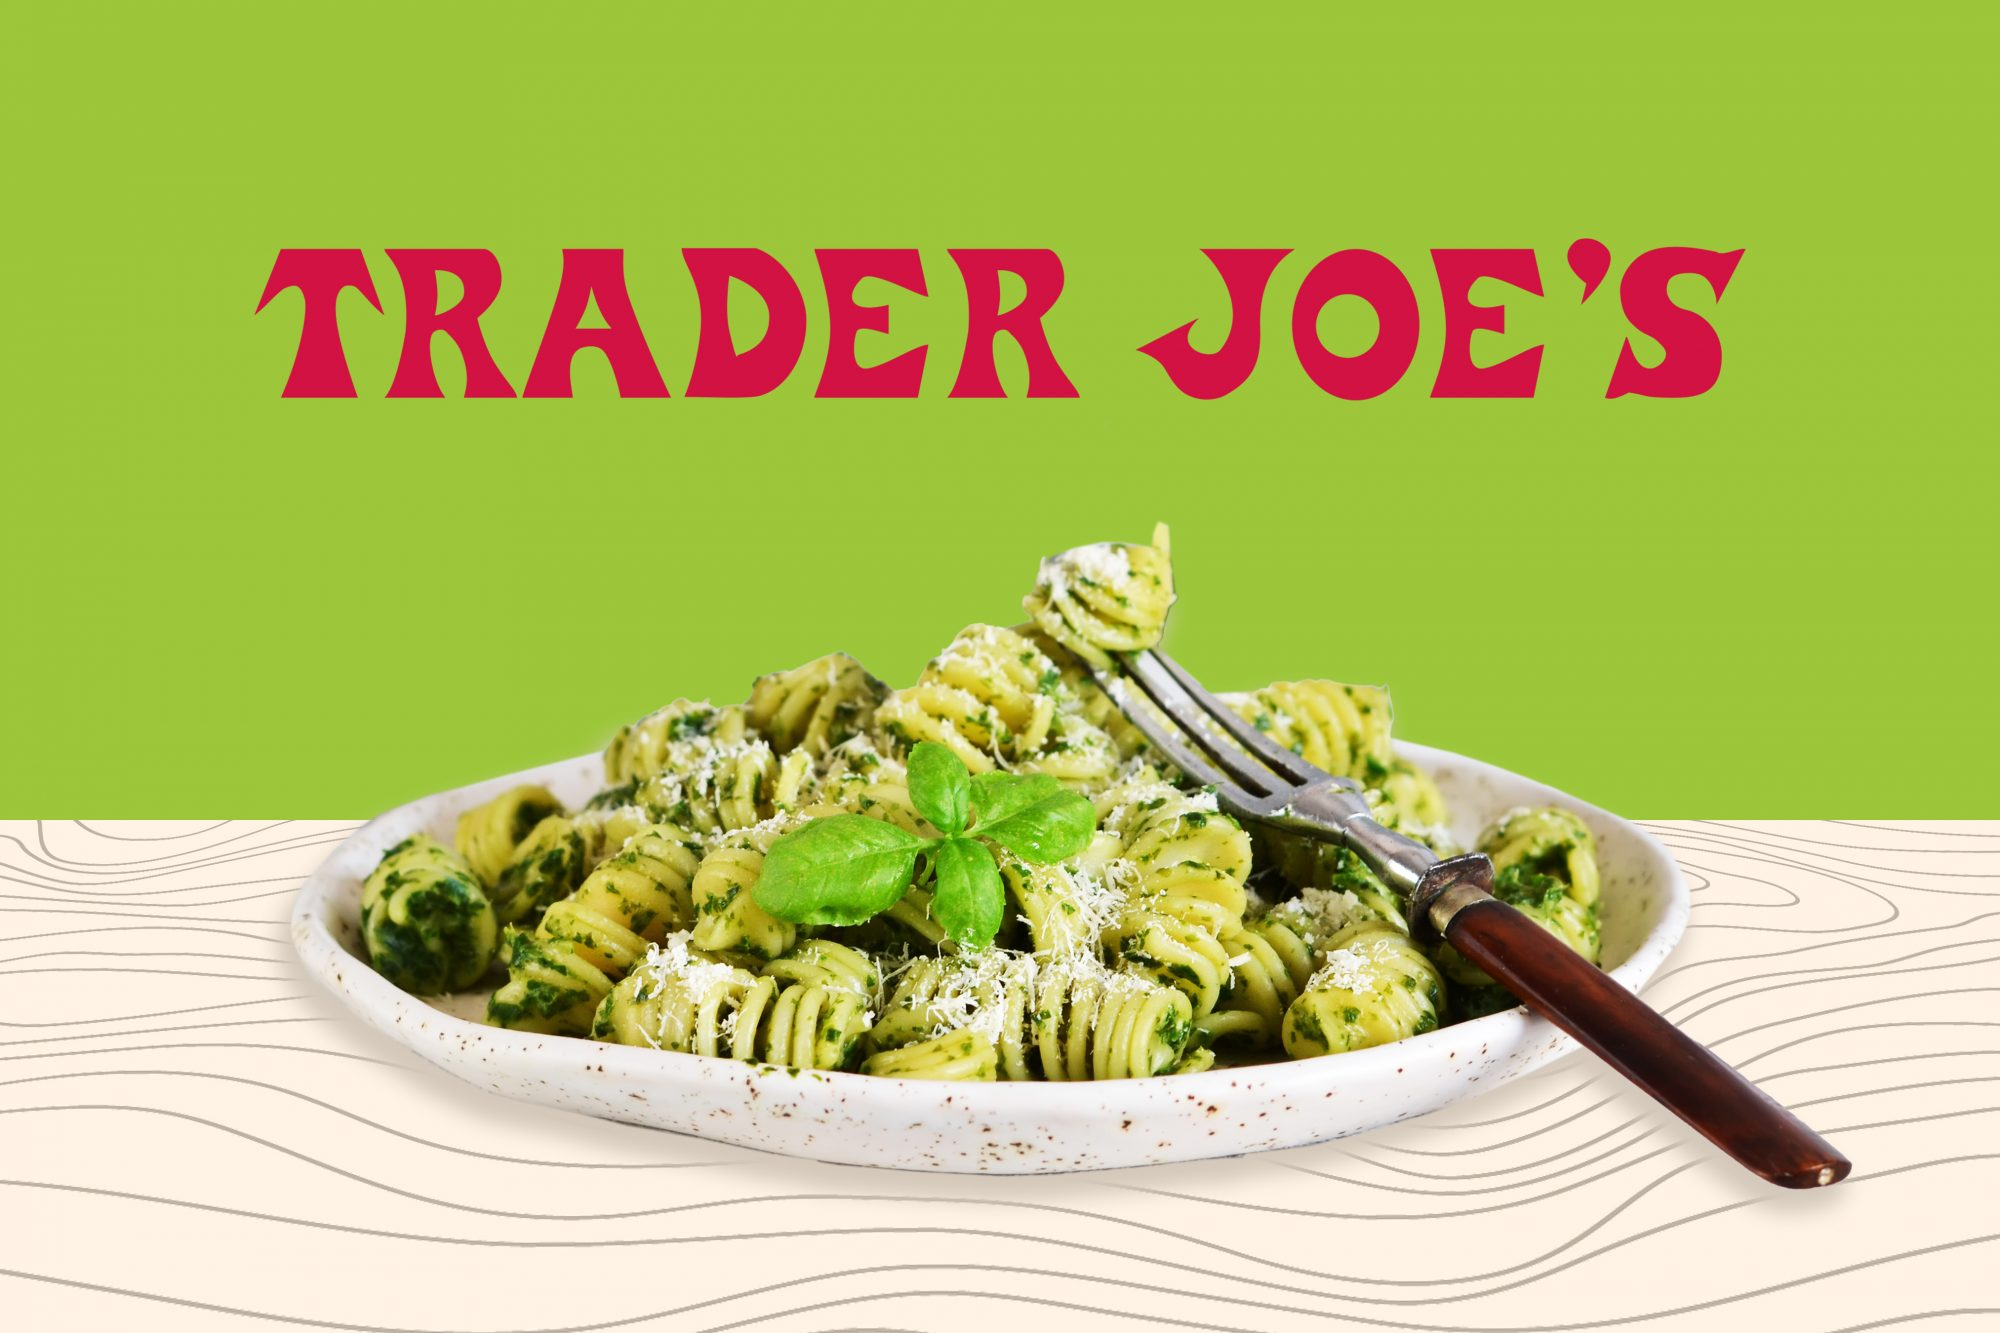 The-5-Best-Pastas-at-Trader-Joes-According-to-Employees-AdobeStock_274288841